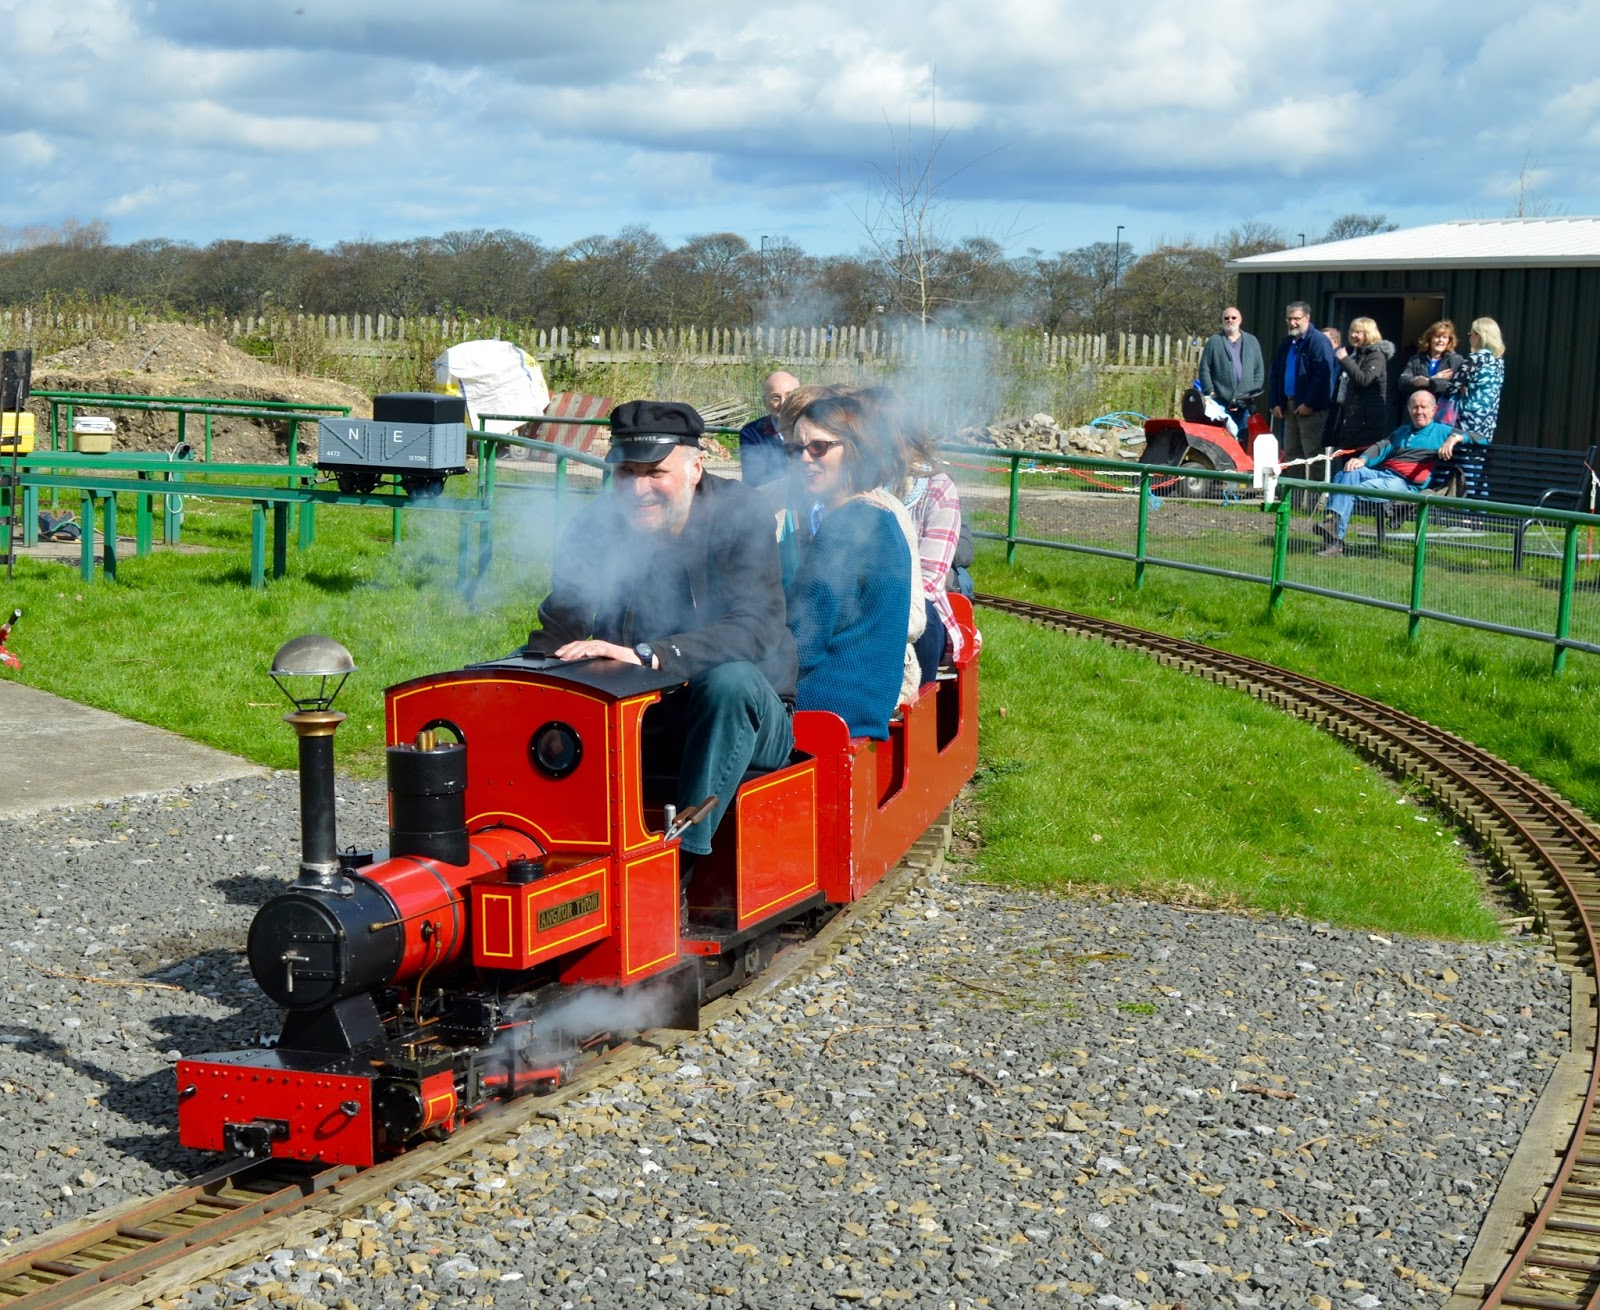 Top 10 train themed days out across North East England  - exhibition park